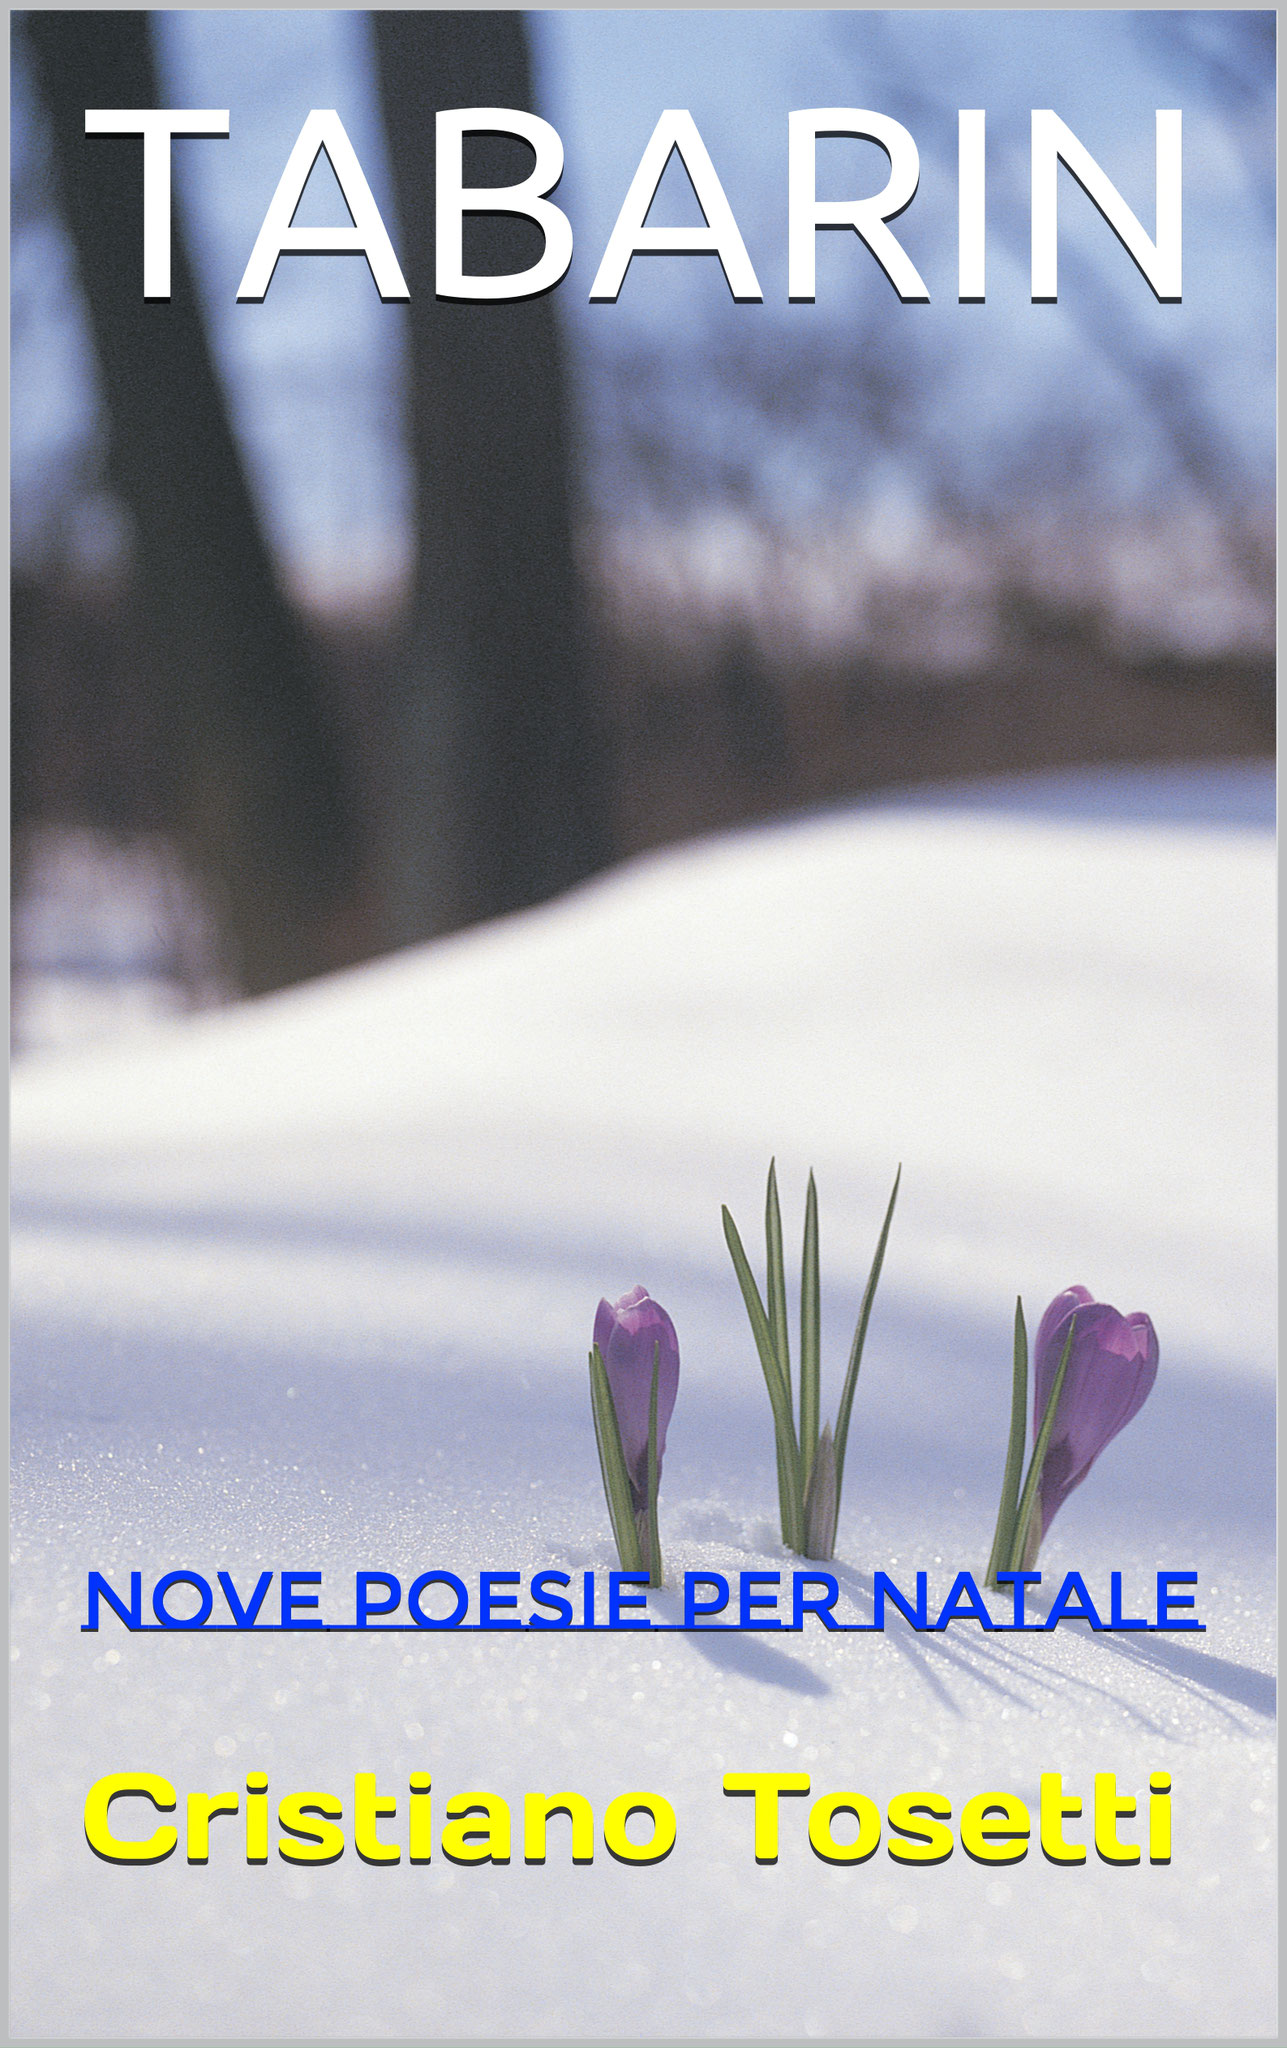 https://www.amazon.it/TABARIN-poesie-Natale-Cristiano-Tosetti-ebook/dp/B077BFLNQQ/ref=sr_1_1?s=digital-text&ie=UTF8&qid=1510647650&sr=1-1&keywords=tabarin